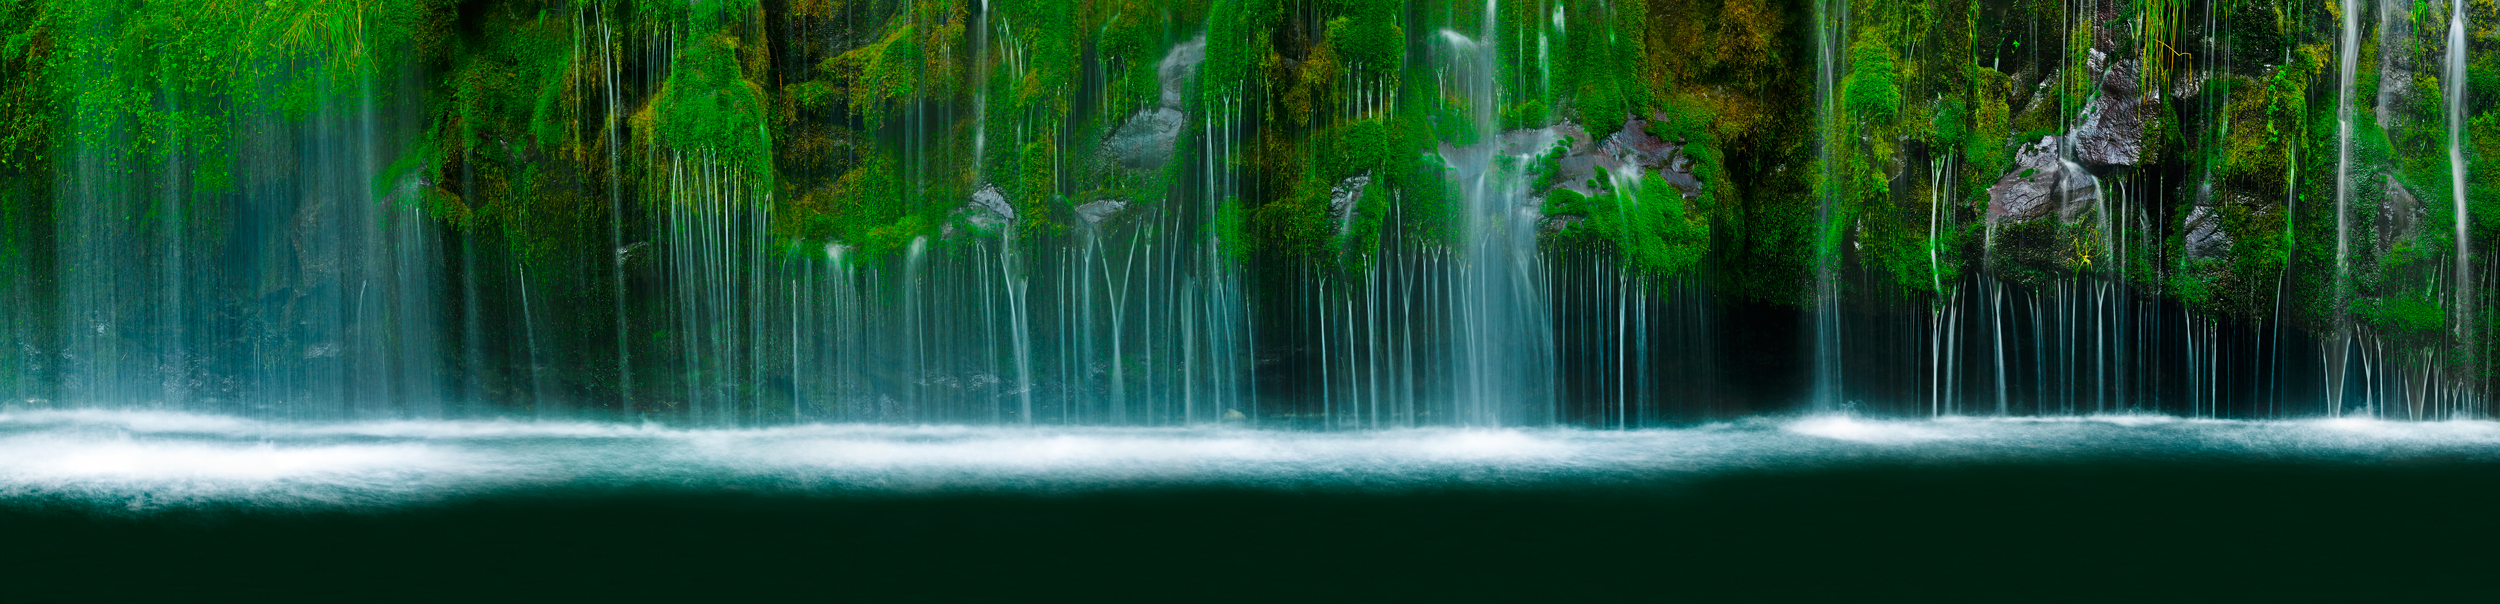 Mossbrae Falls Siskiyou County Dunsmuir Sacramento River Shasta Cascade California Waterfall Panorama Fine Art Landscape Photography Mark Lilly